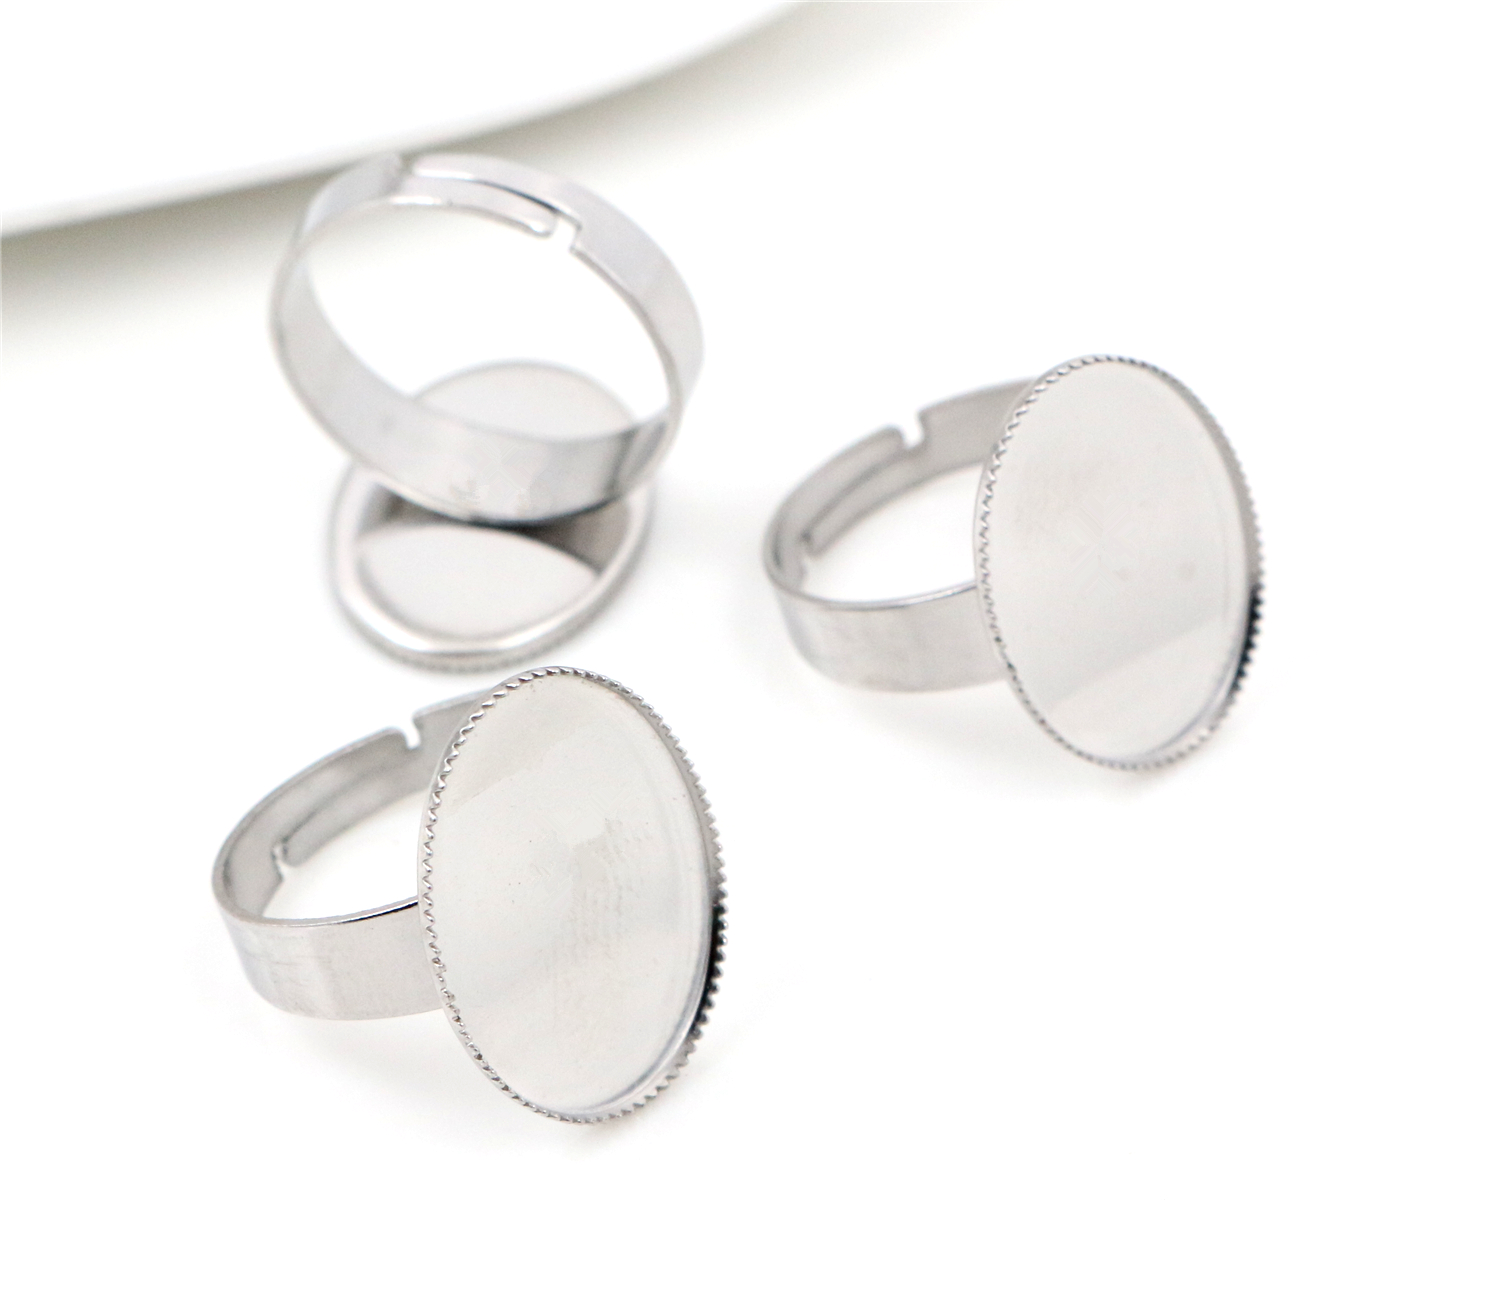 13x18mm 10pcs/Lot No Fade Stainless Steel Adjustable Ring Settings Blank/Base,Fit 13x18mm Glass Cabochons-T1-23